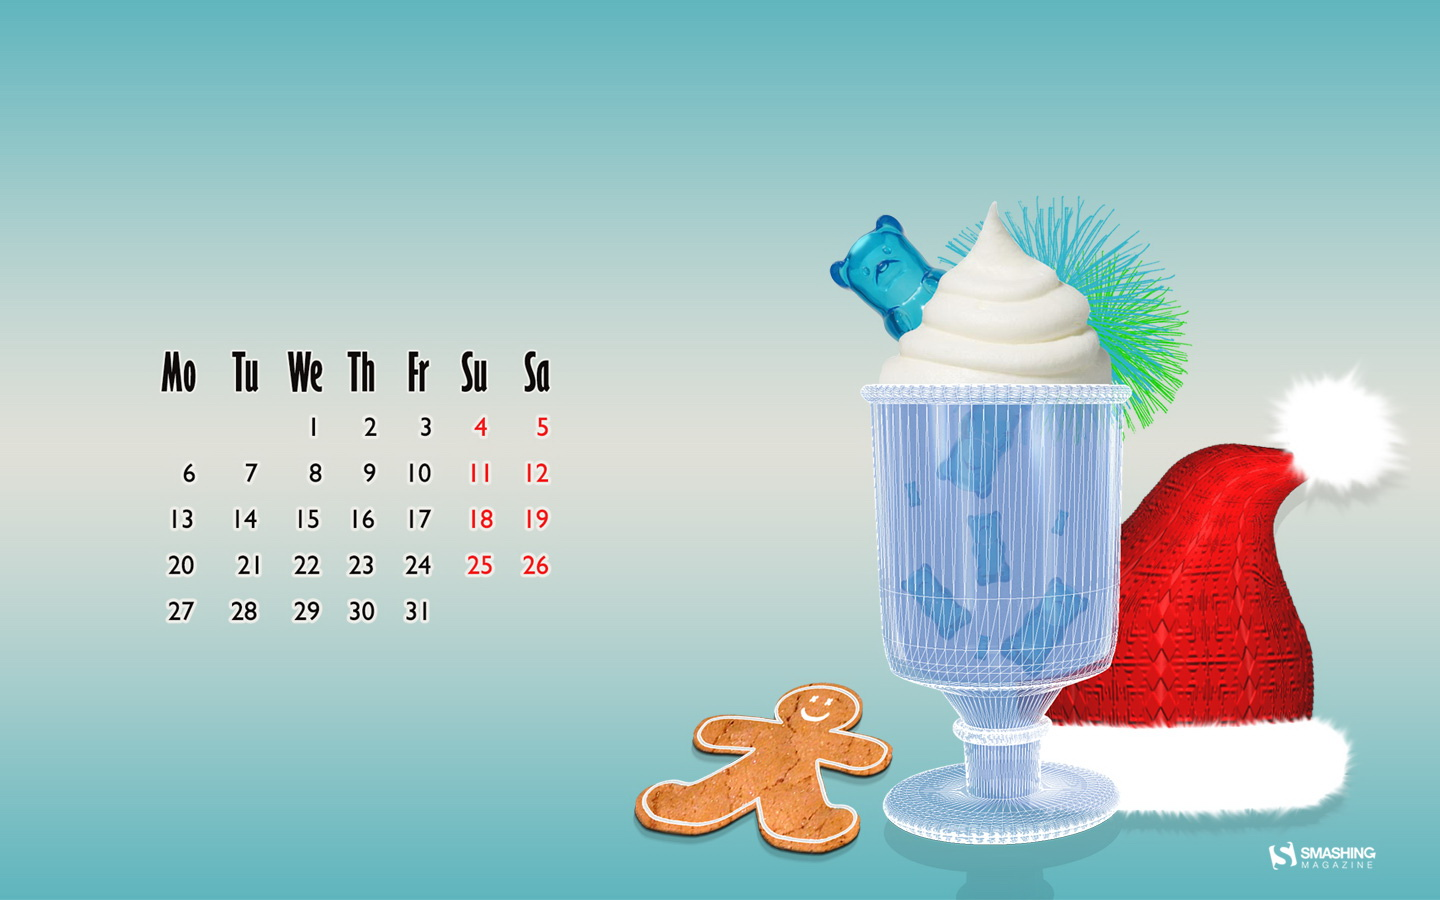 In January Calendar Wallpaper 49811